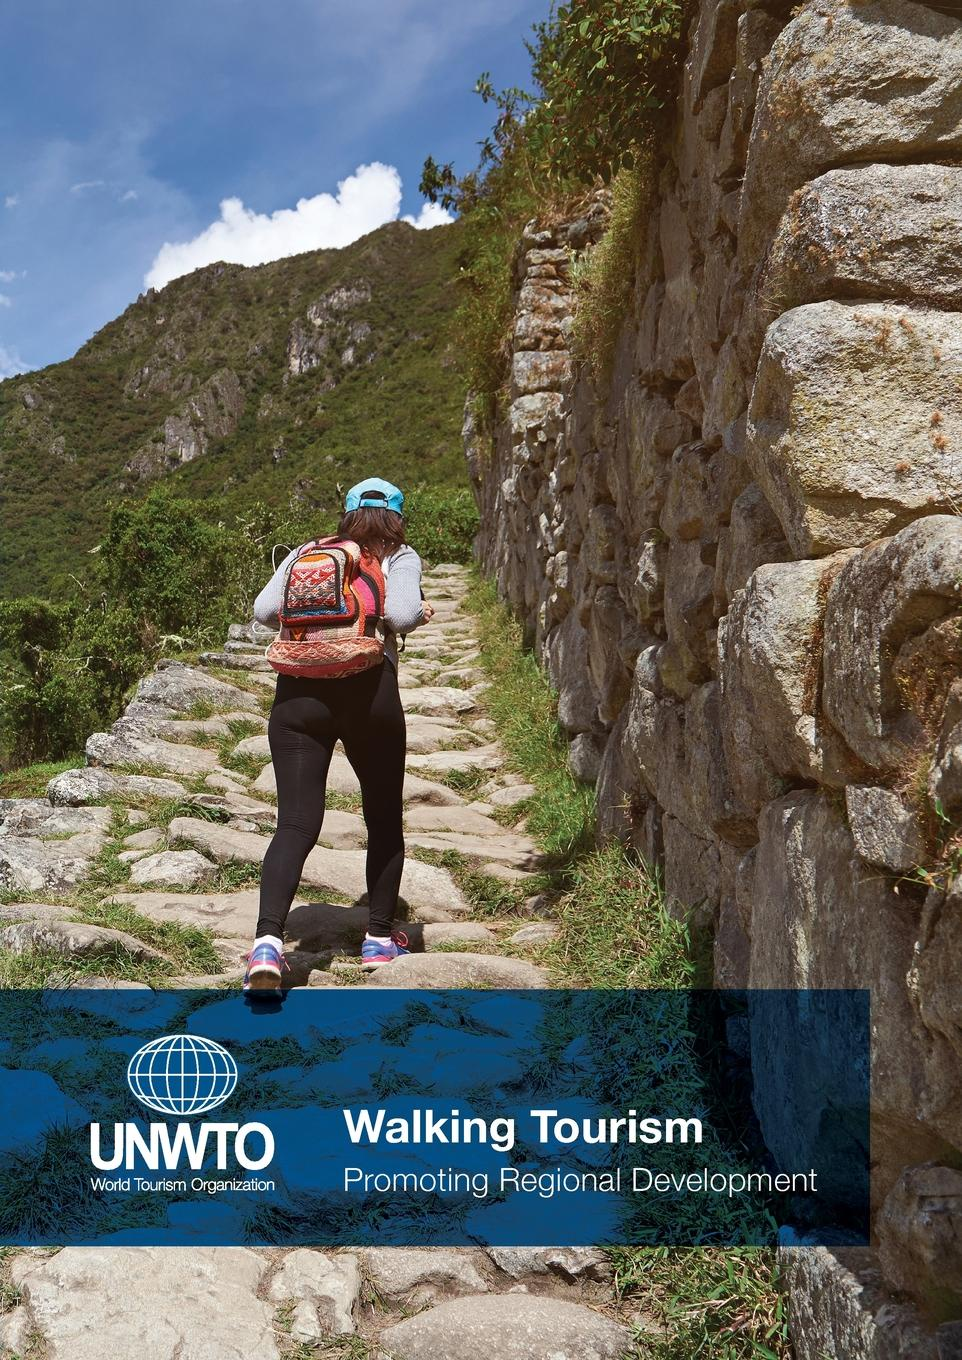 World Tourism Organization (UNWTO) Walking Tourism. Promoting Regional Development